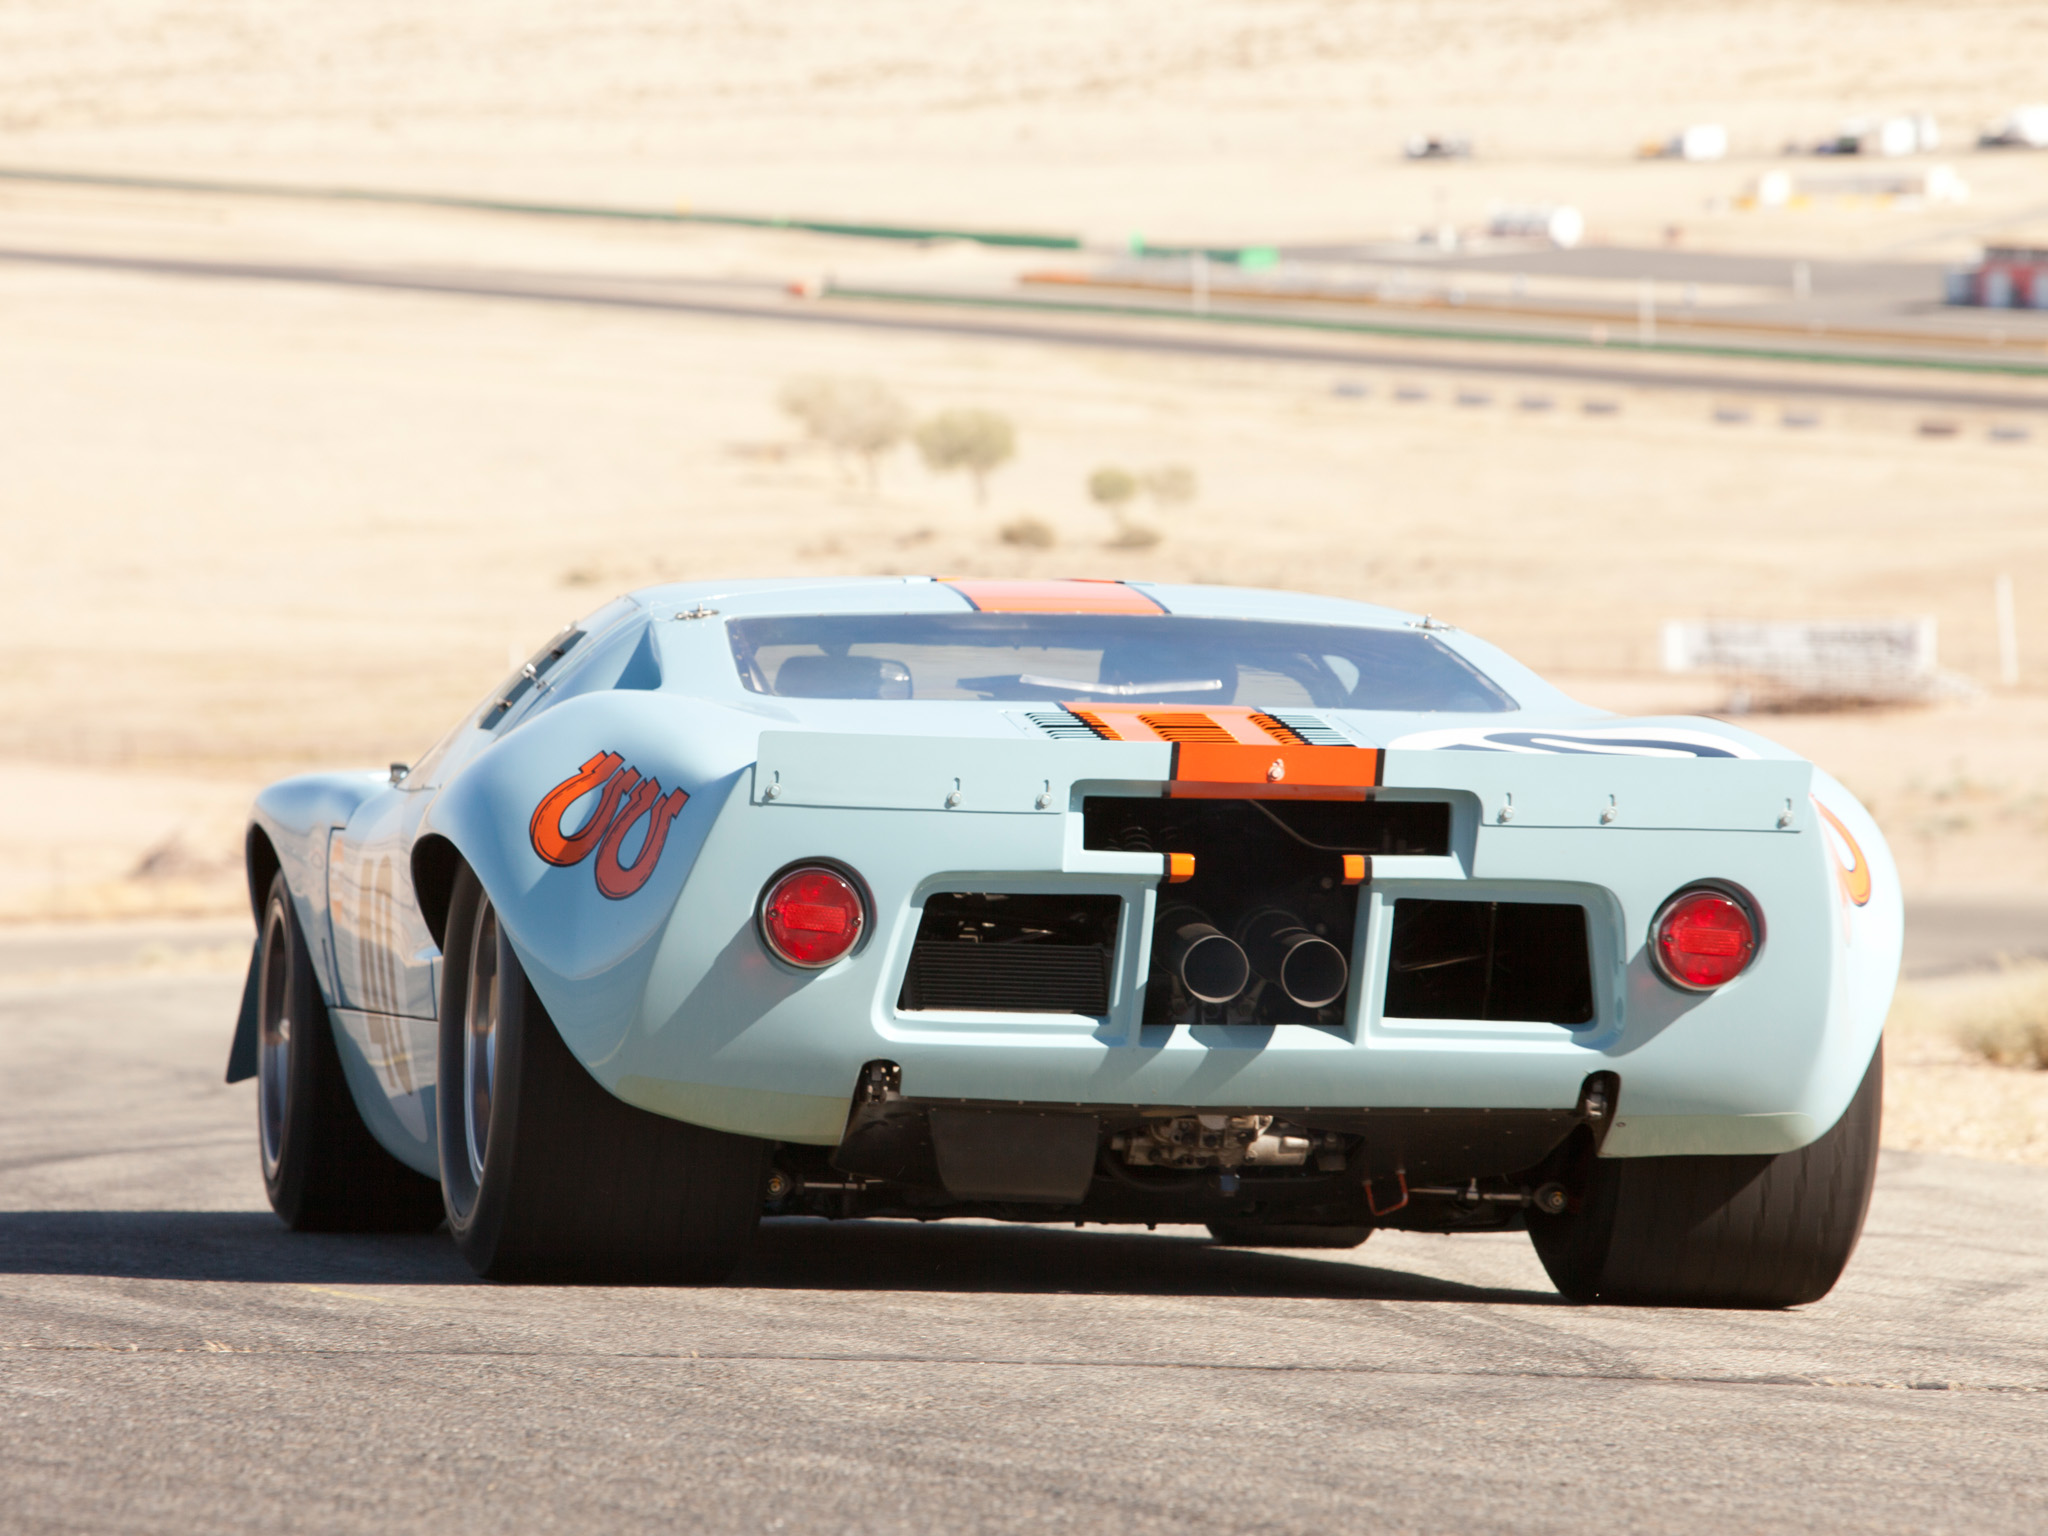 4k Car Wallpaper Mustang 1960 1968 Ford Gt40 Gulf Oil Le Mans Race Racing Supercar